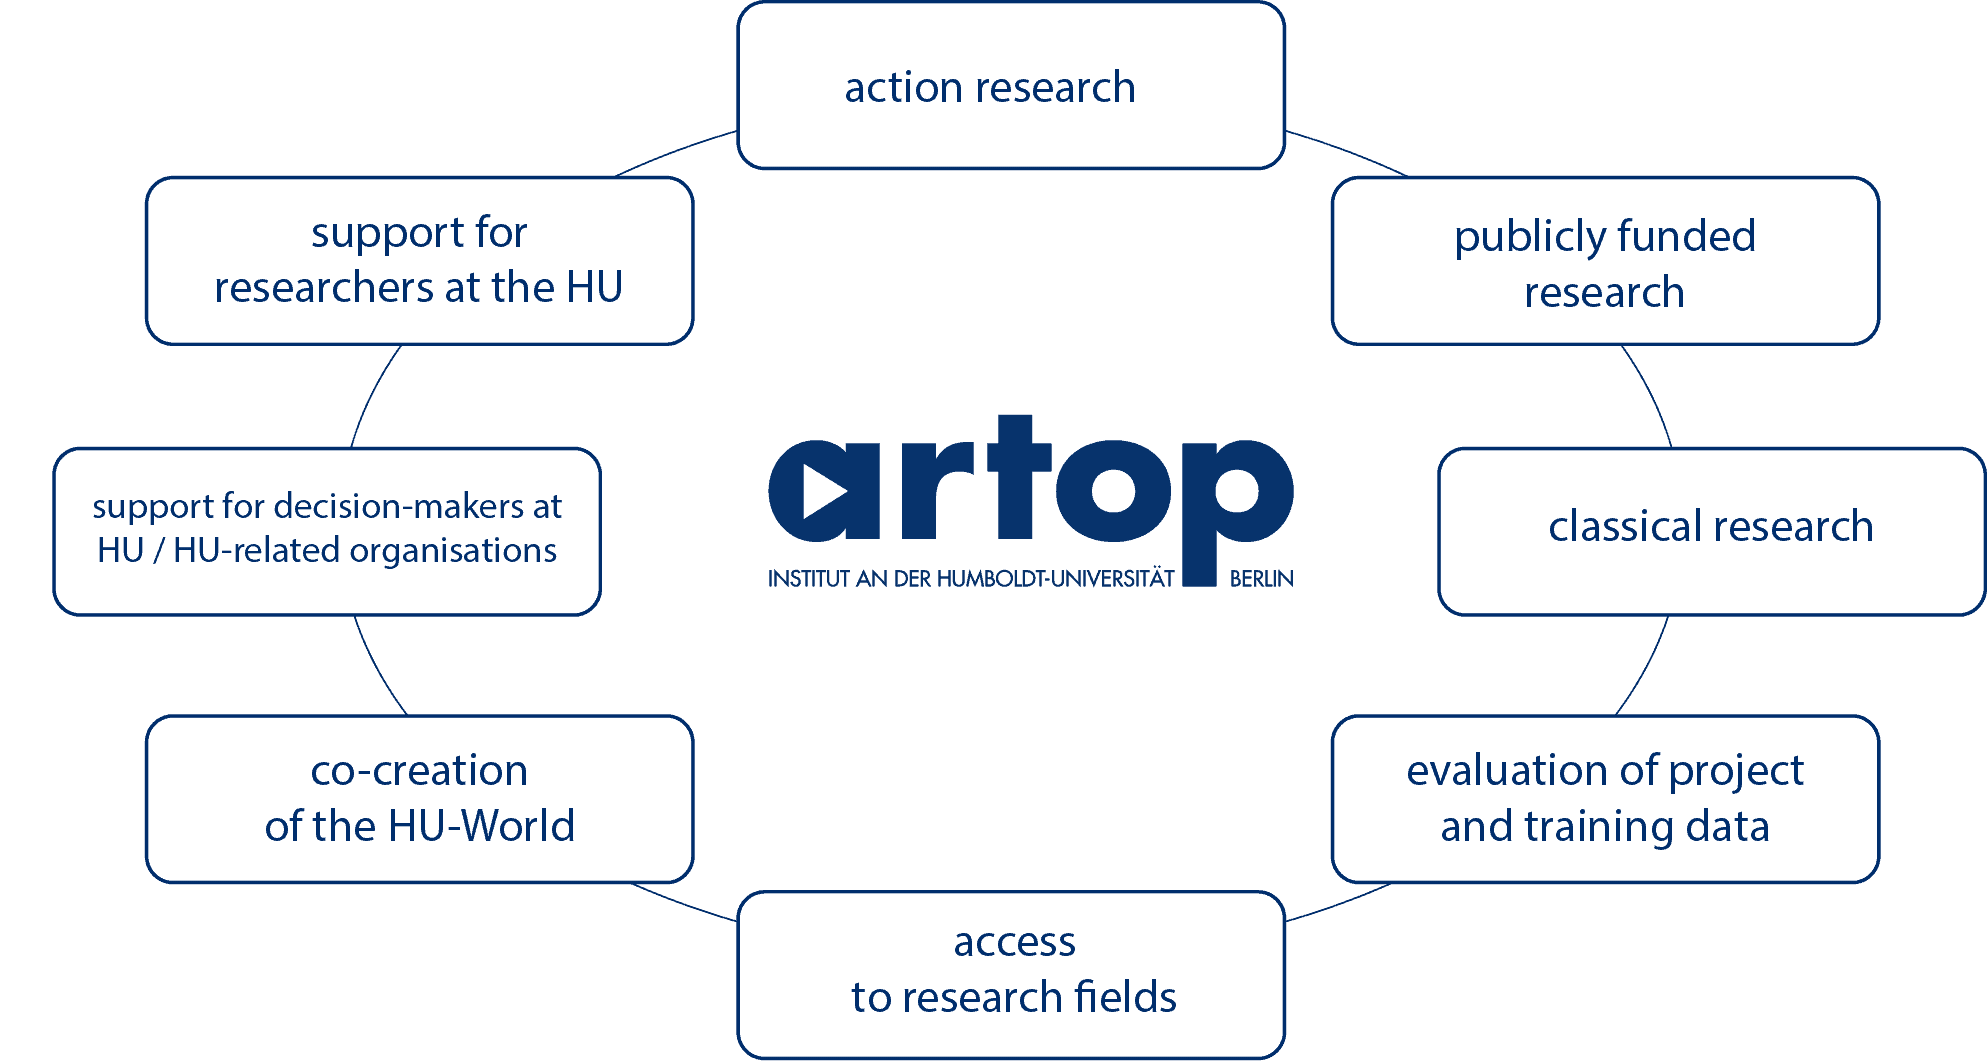 artop research: eight approaches